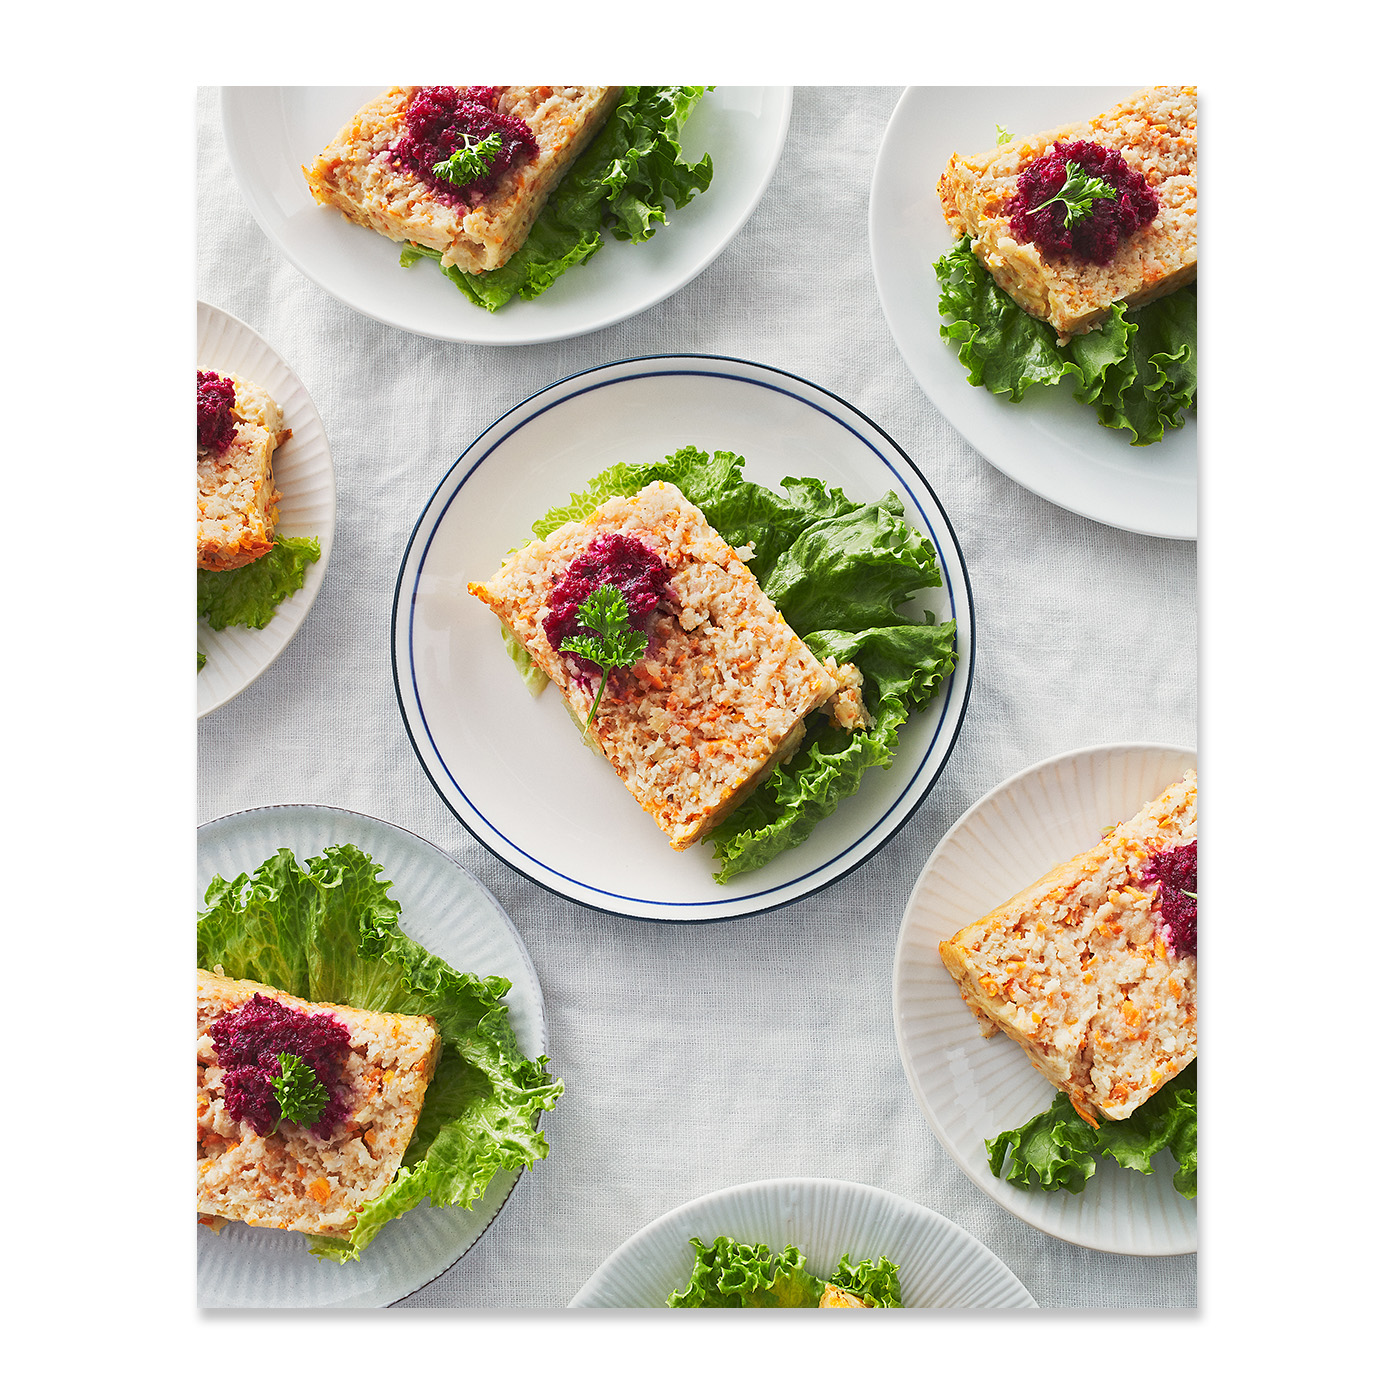 Gefilte Fish Loaf with Horseradish